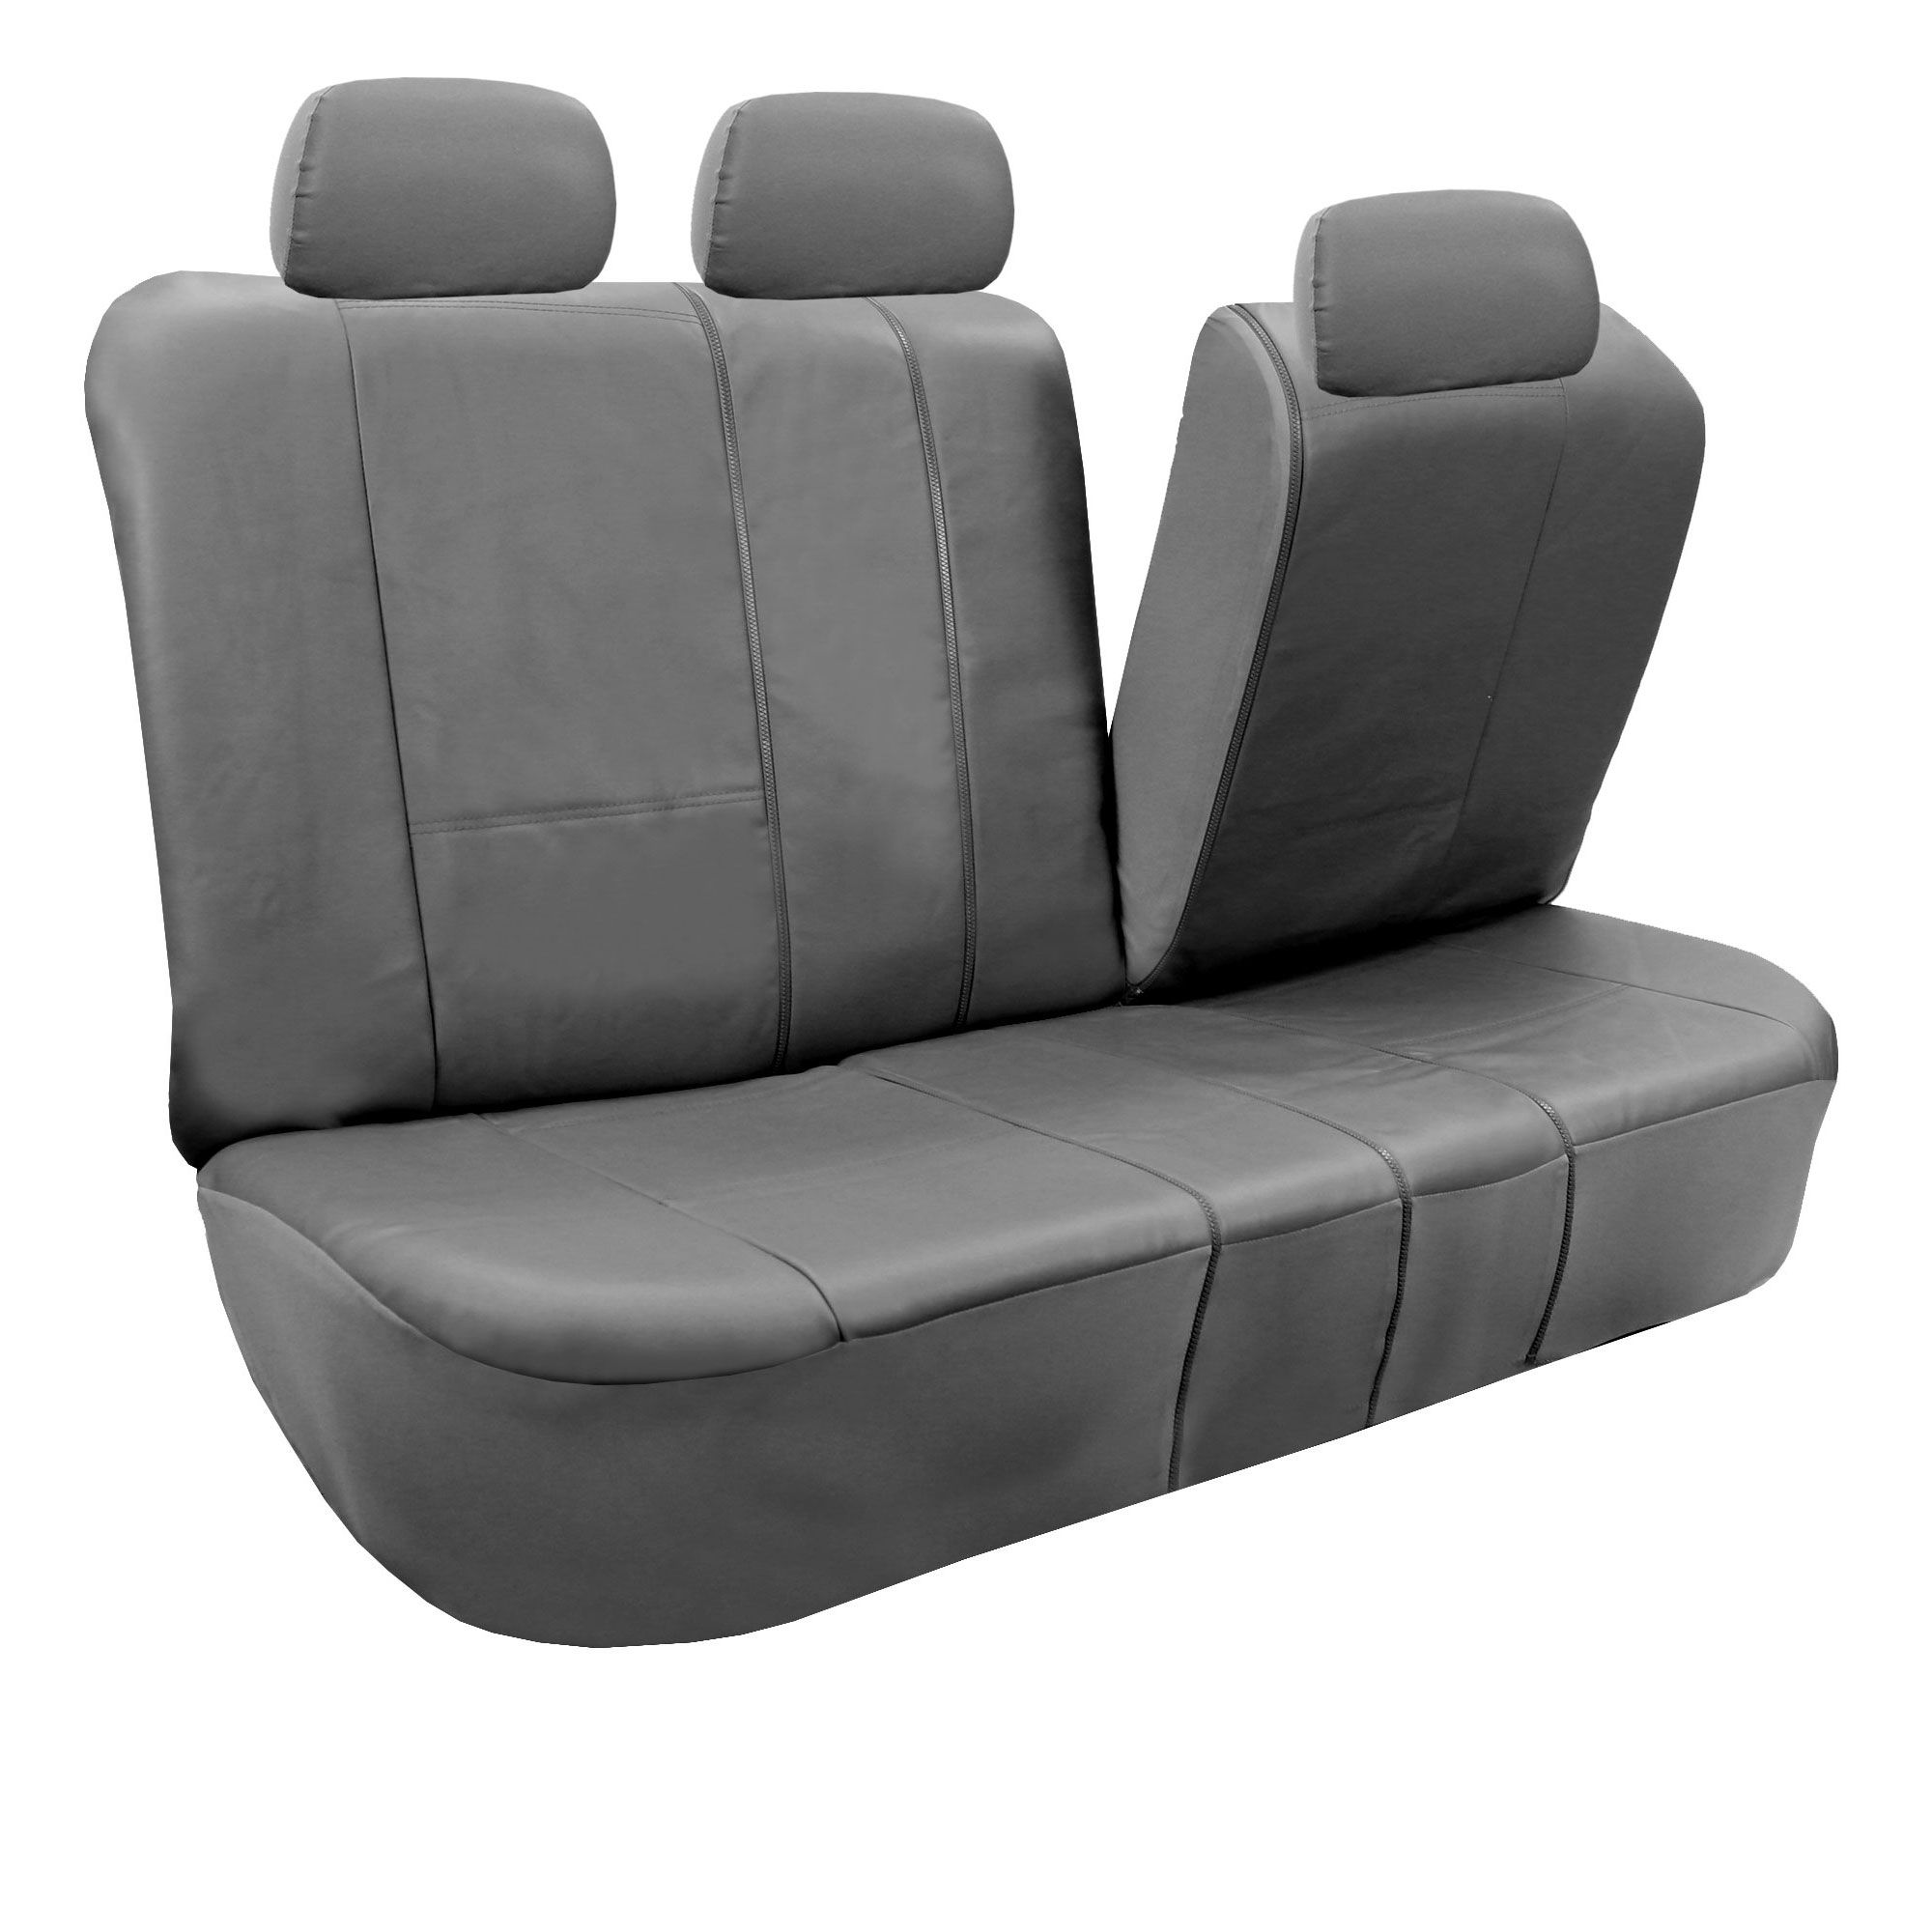 Fh group gray faux leather airbag compatible and split